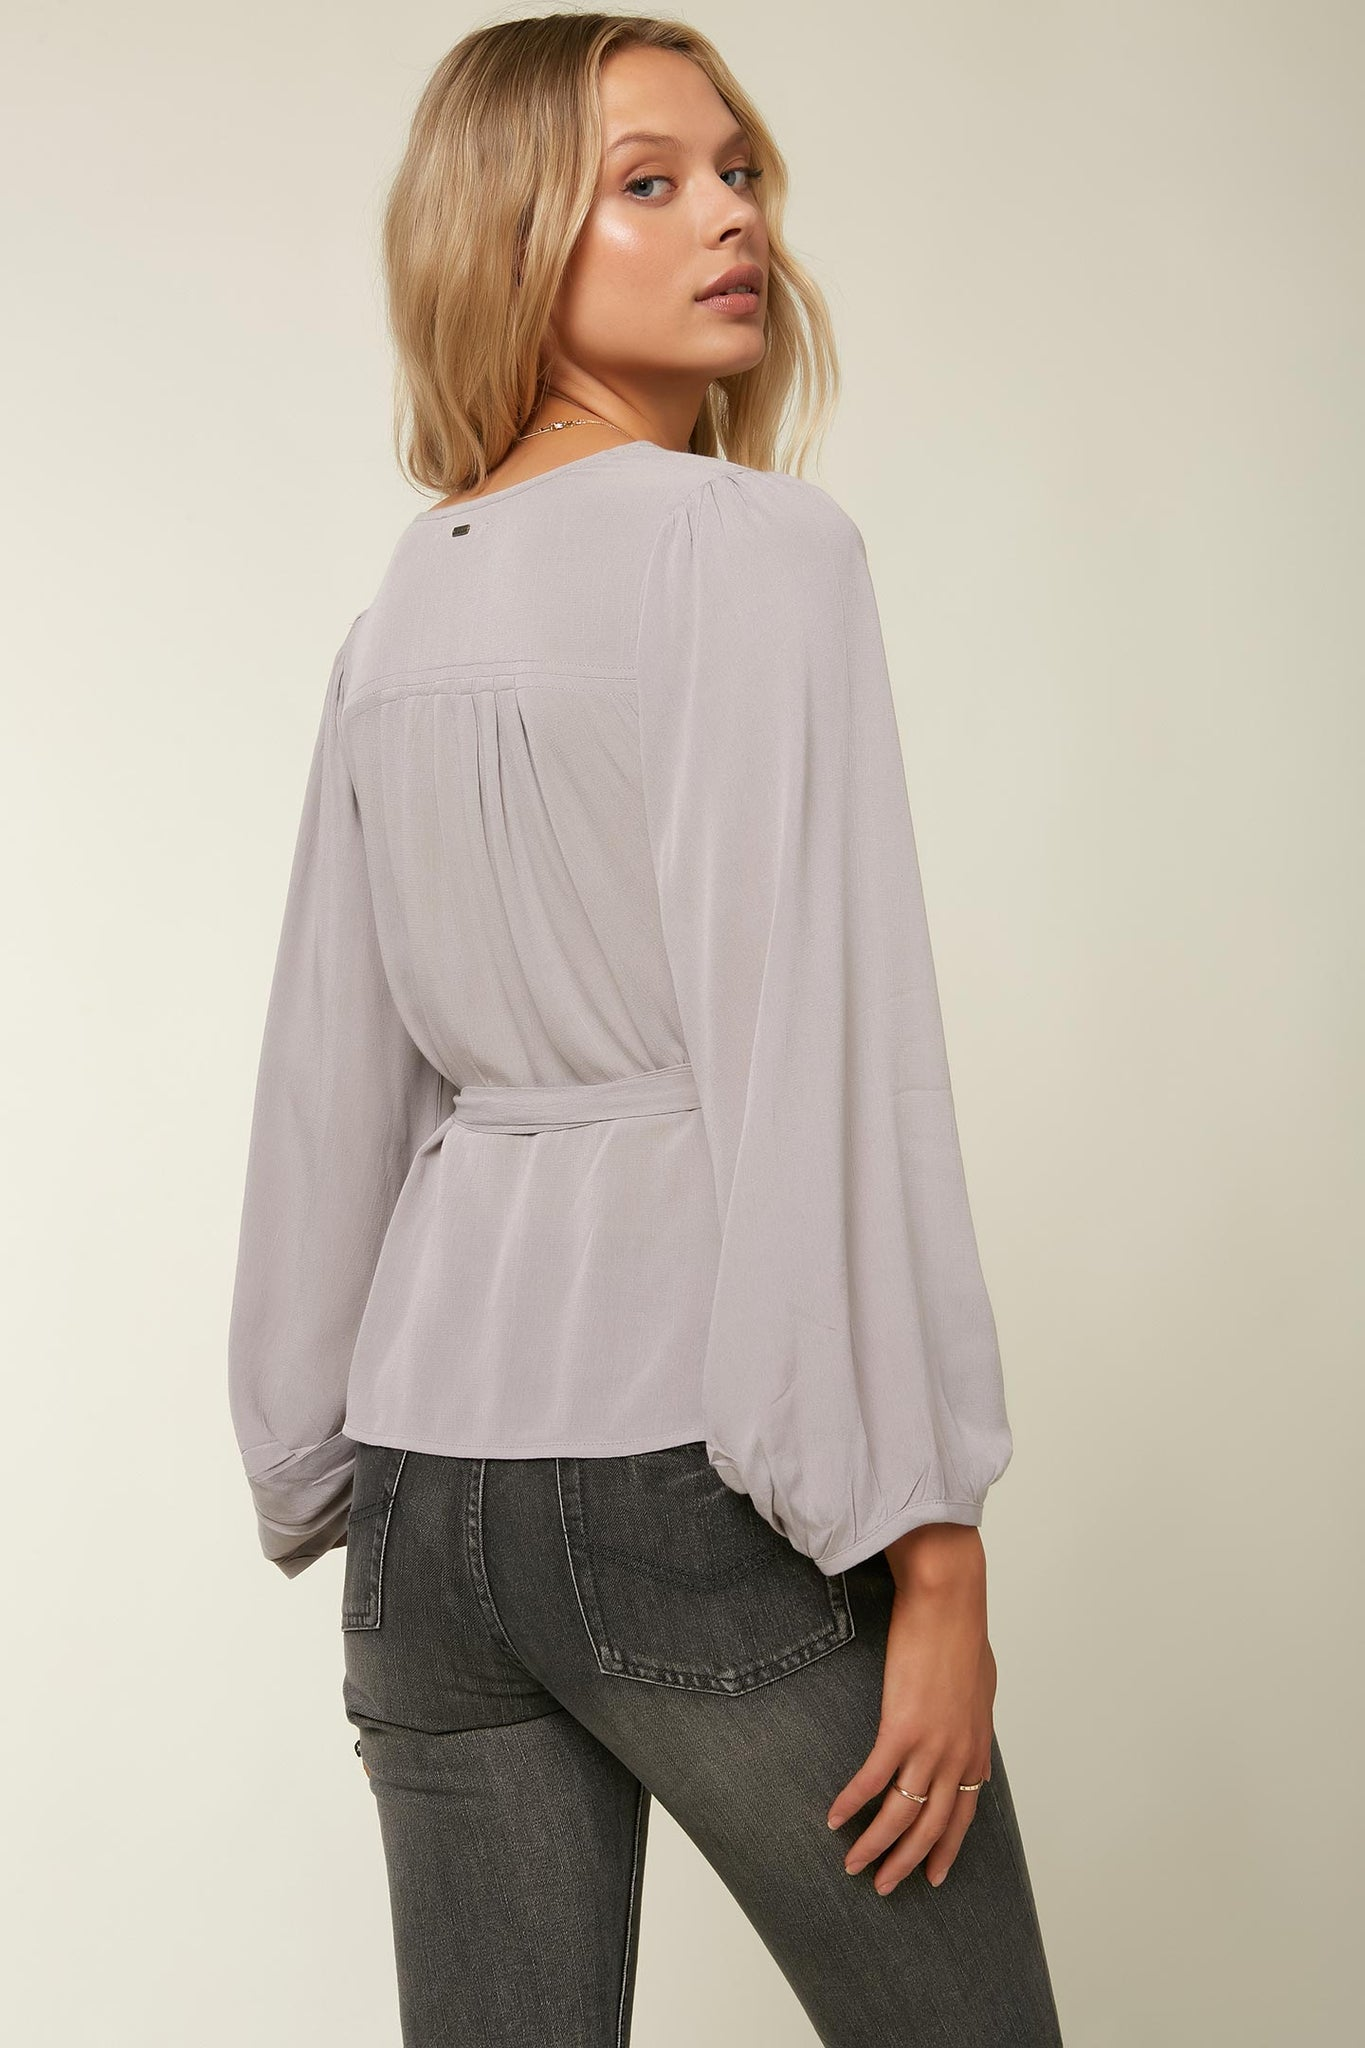 Barrymore Top | O'Neill Clothing USA